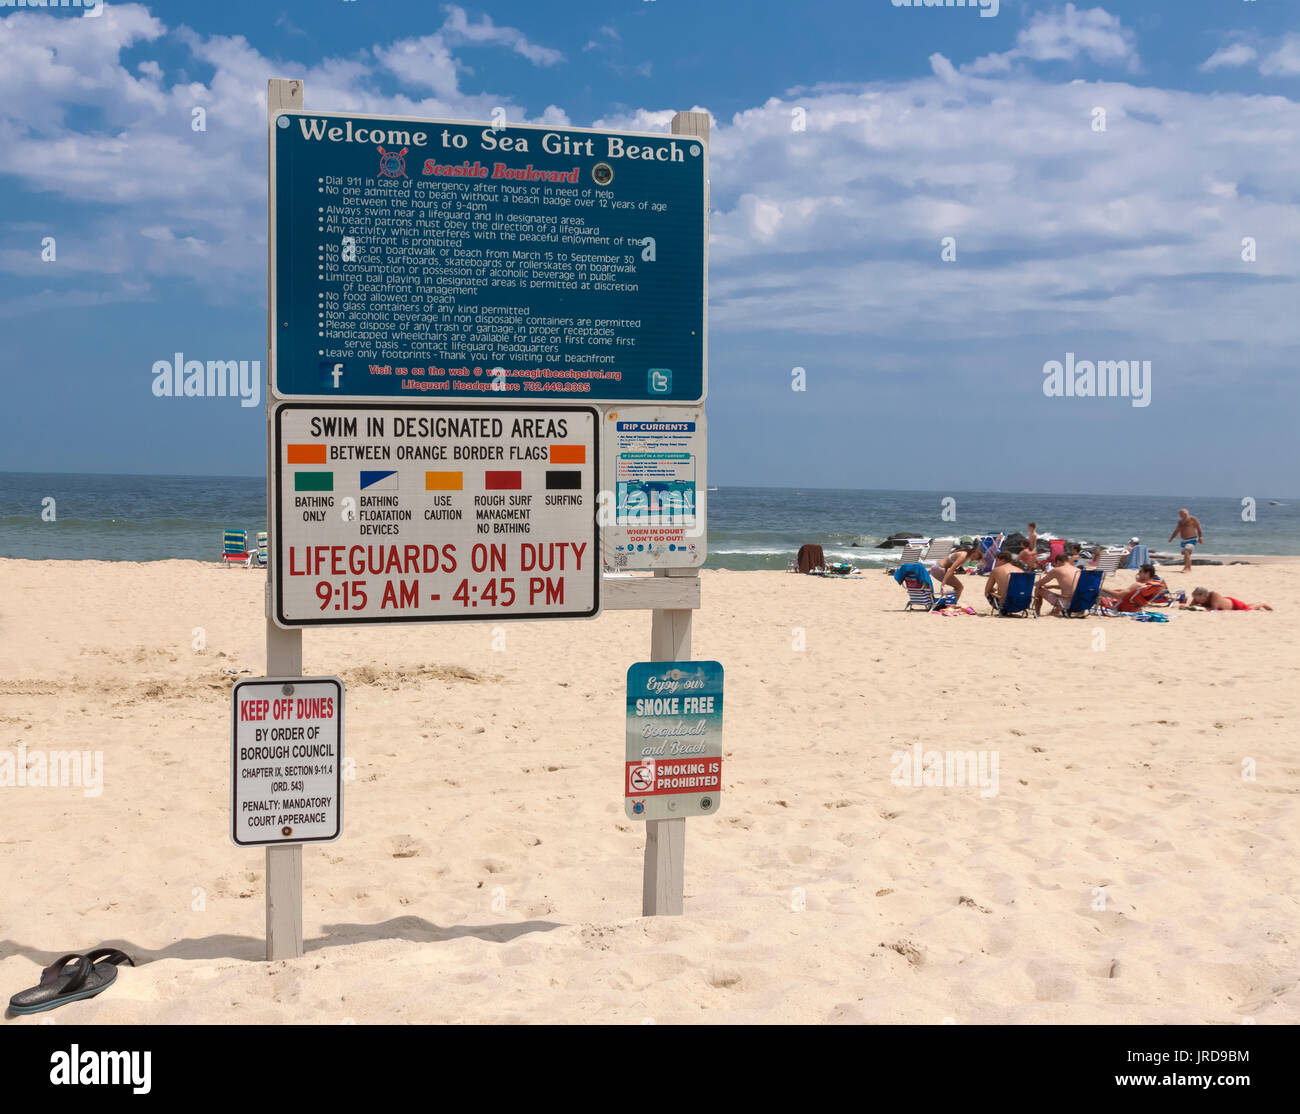 Beach sign outlining rules, regulations, & ordinances in Sea Girt, New Jersey, United States. - Stock Image